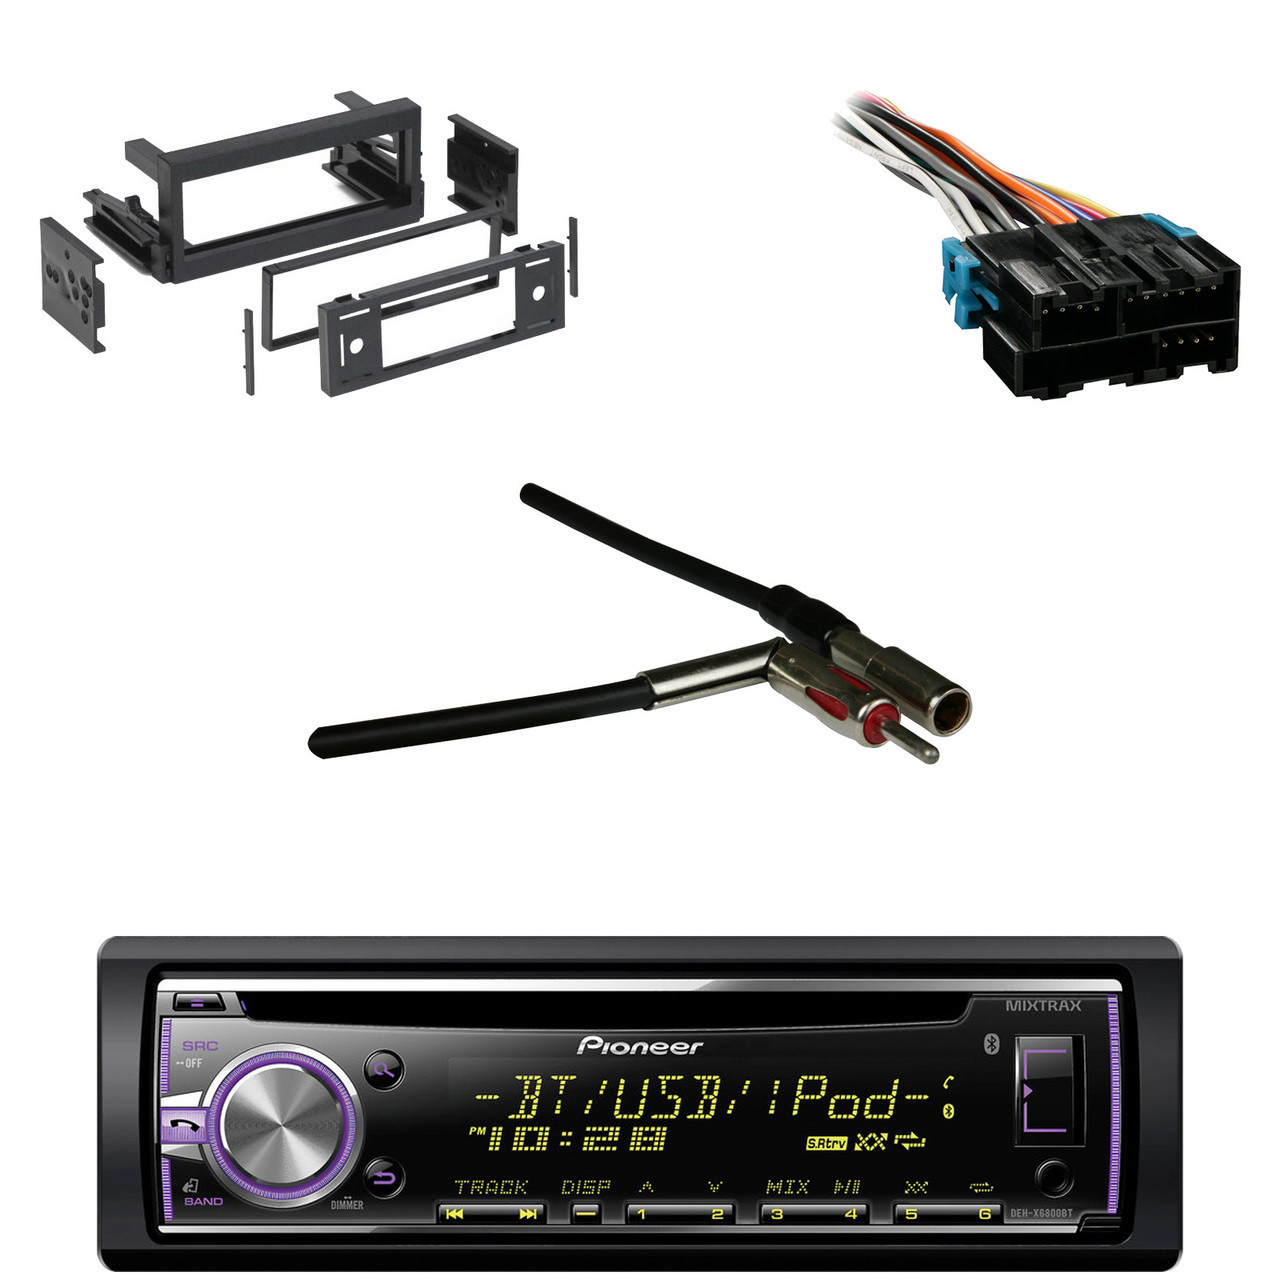 medium resolution of bluetooth pioneer cd car receiver gm wire harness antenna adapter metra din kit road entertainment